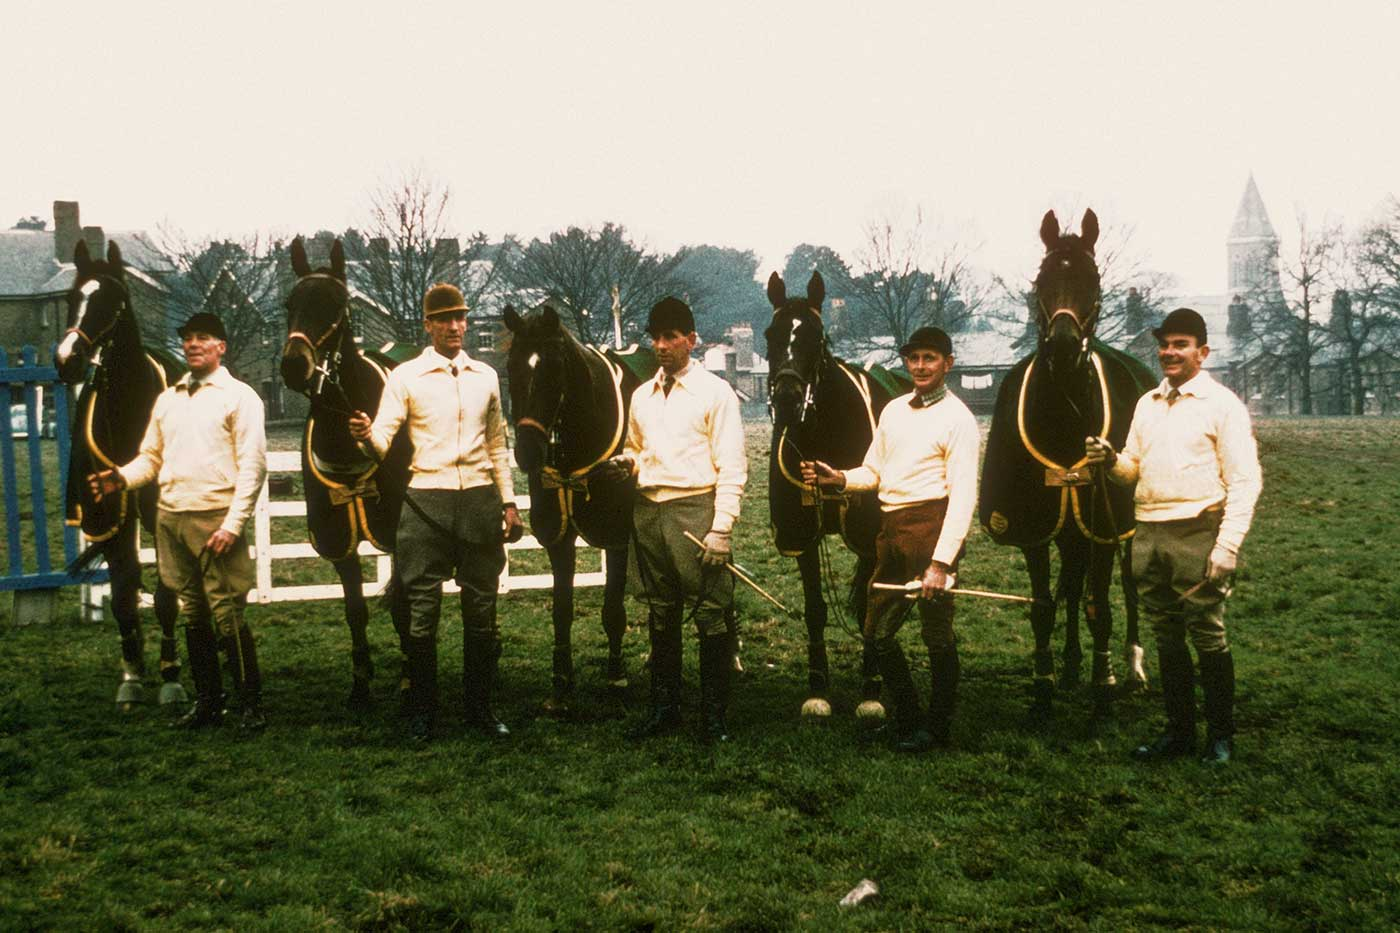 Australian Olympic three-day event team (from left) Laurie Morgan and Salad Days, Bill Roycroft  and Sabre, John Kelly and Pioneer, Brian Crago and Toscanella and Neale Lavis and Mirrabooka, at Aldershot, England, 1960. - click to view larger image